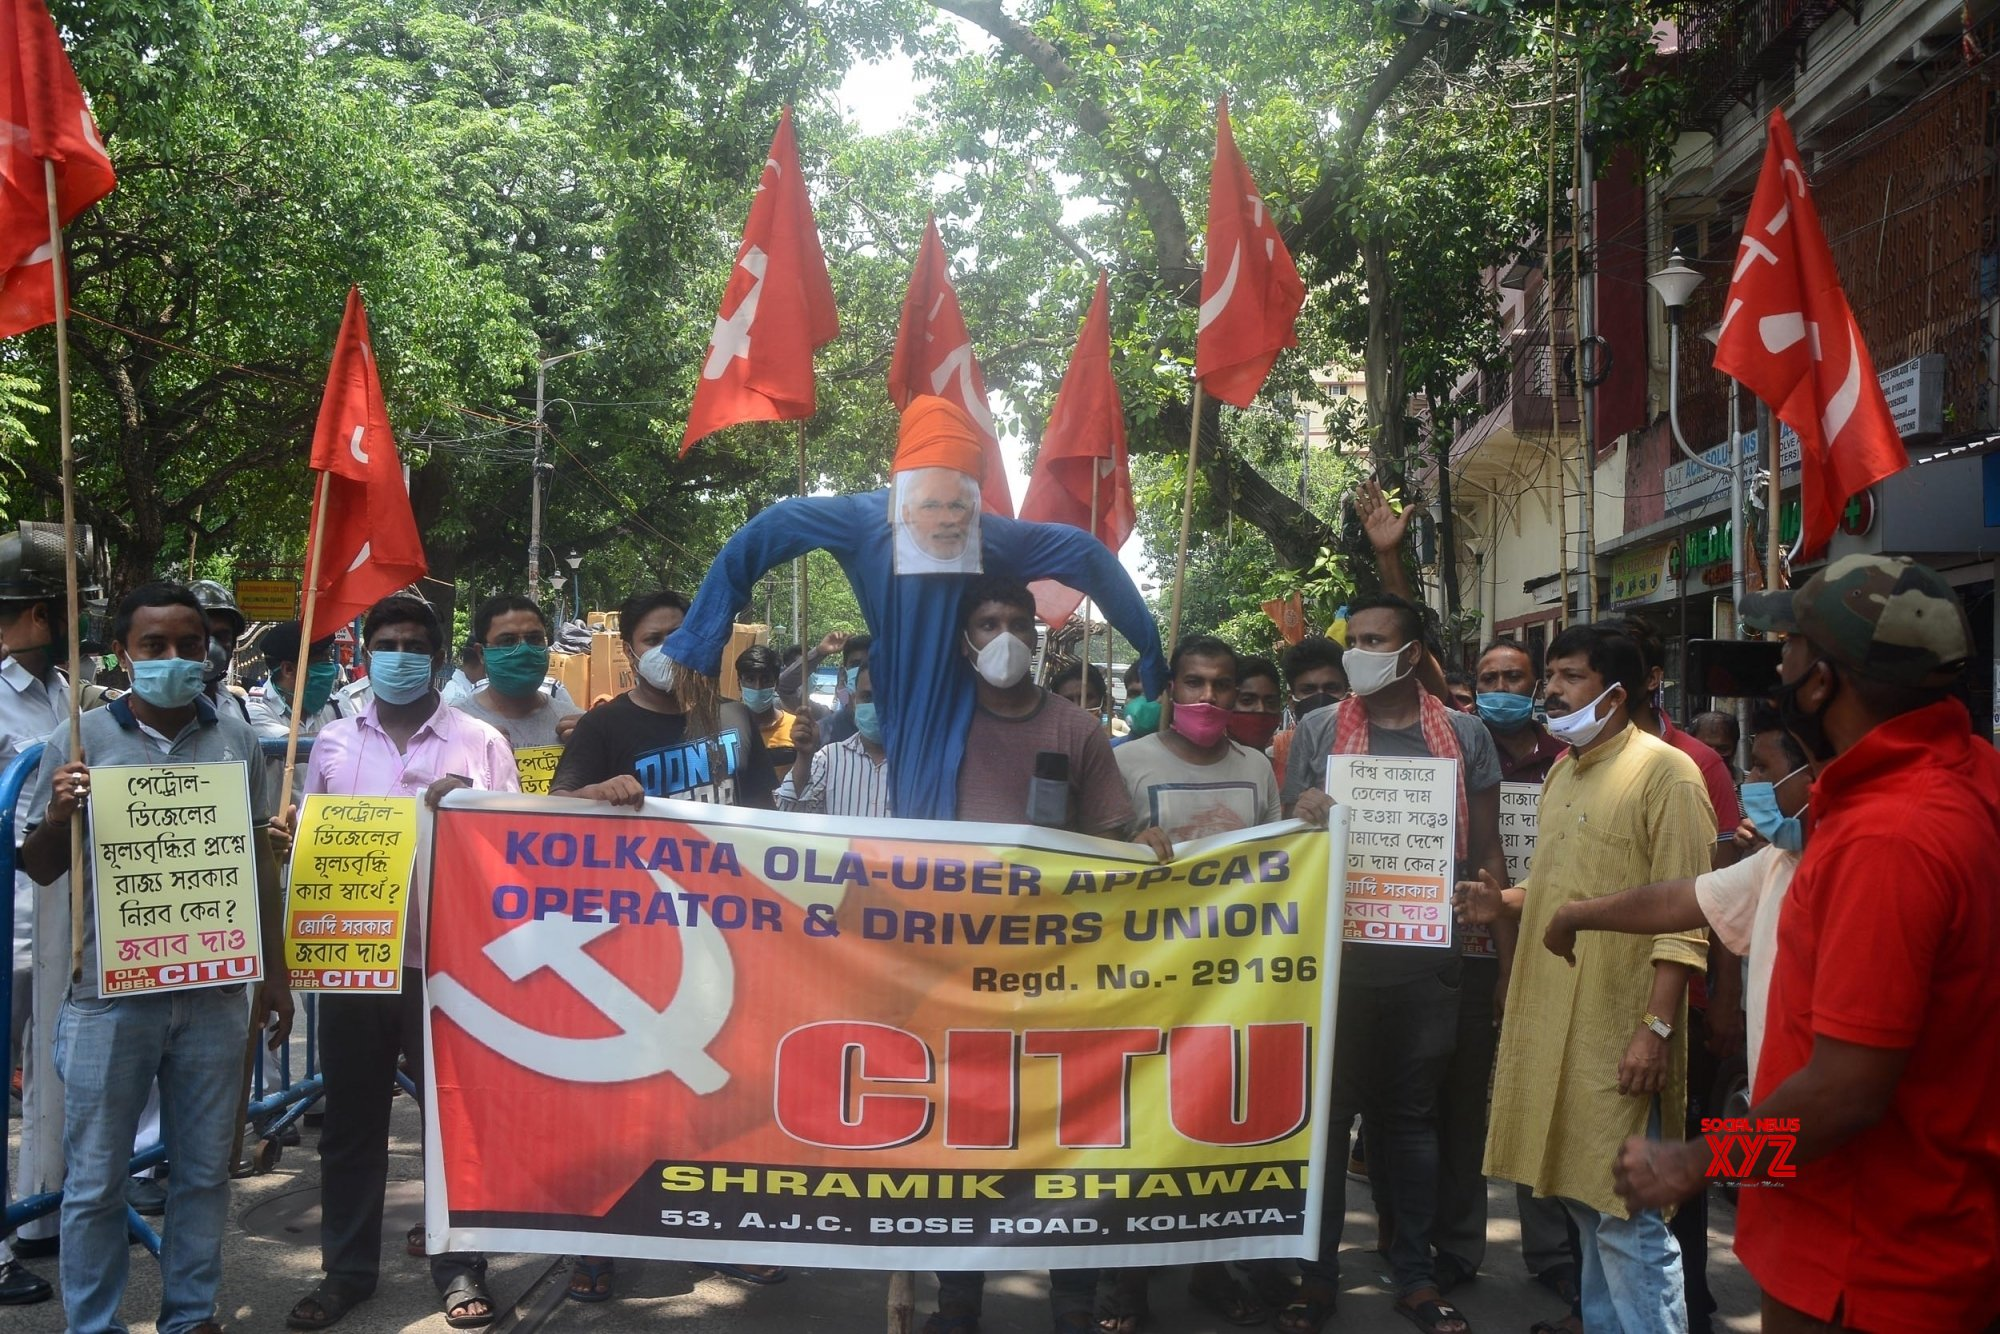 Kolkata: Ola - Uber App - Cab Operator and Drivers Union protest over fuel price hike #Gallery